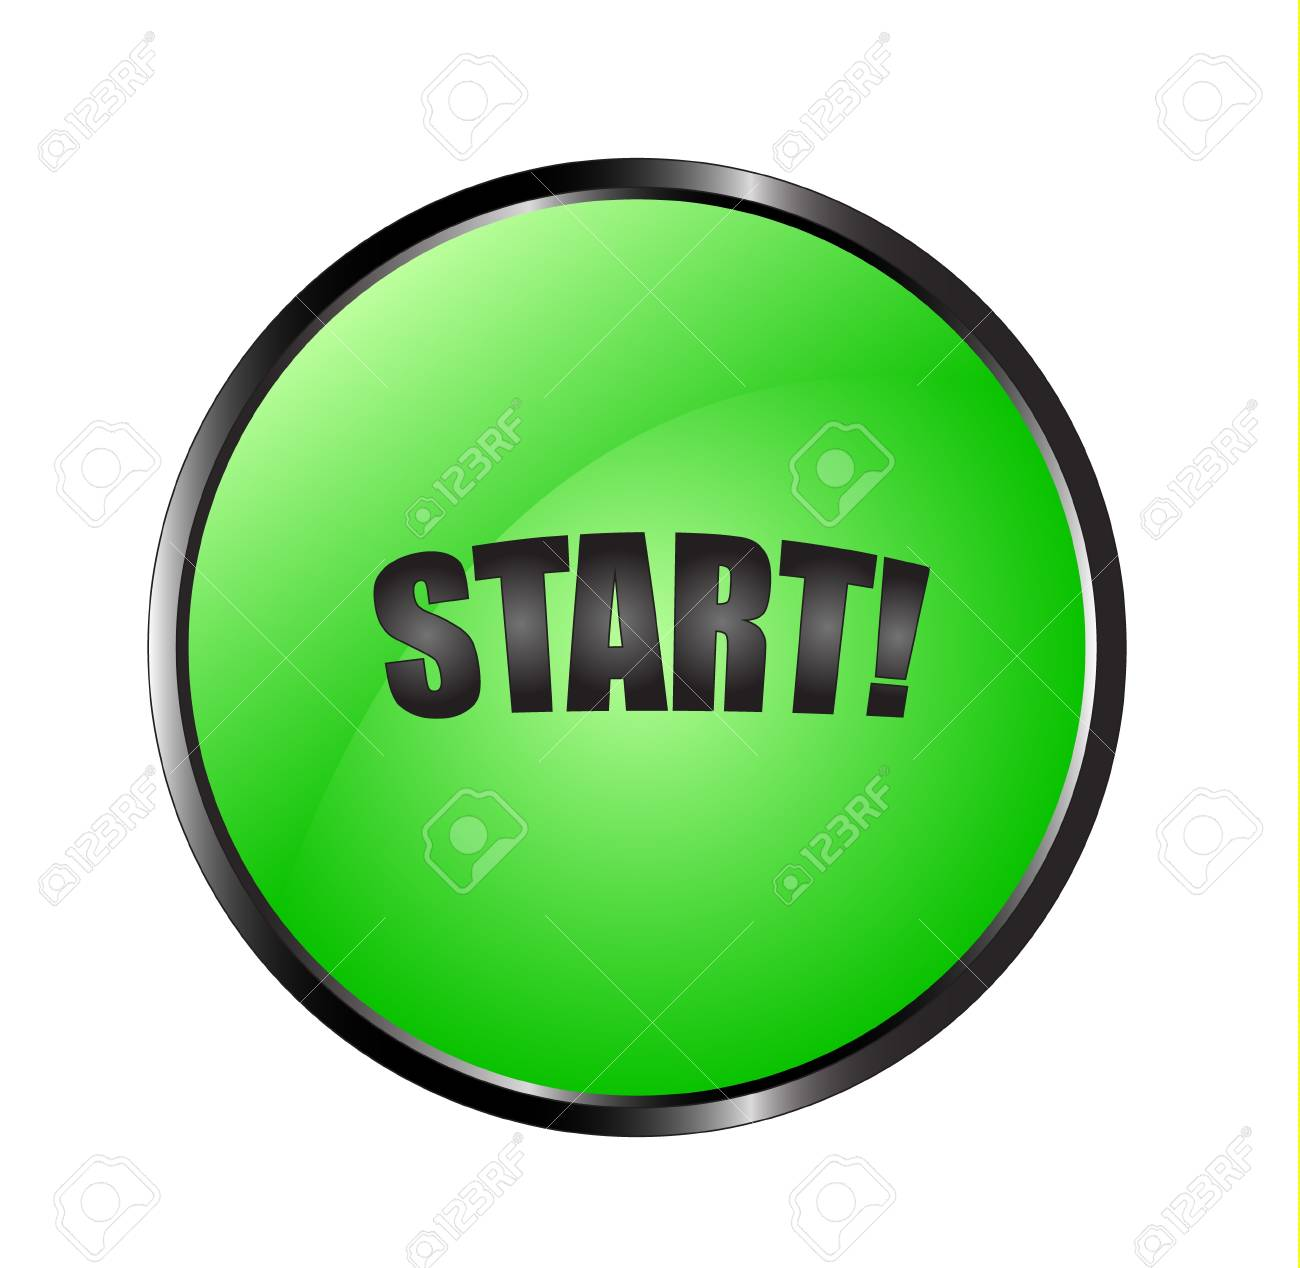 Realistic green button with a black sign start Stock Photo - 17988912